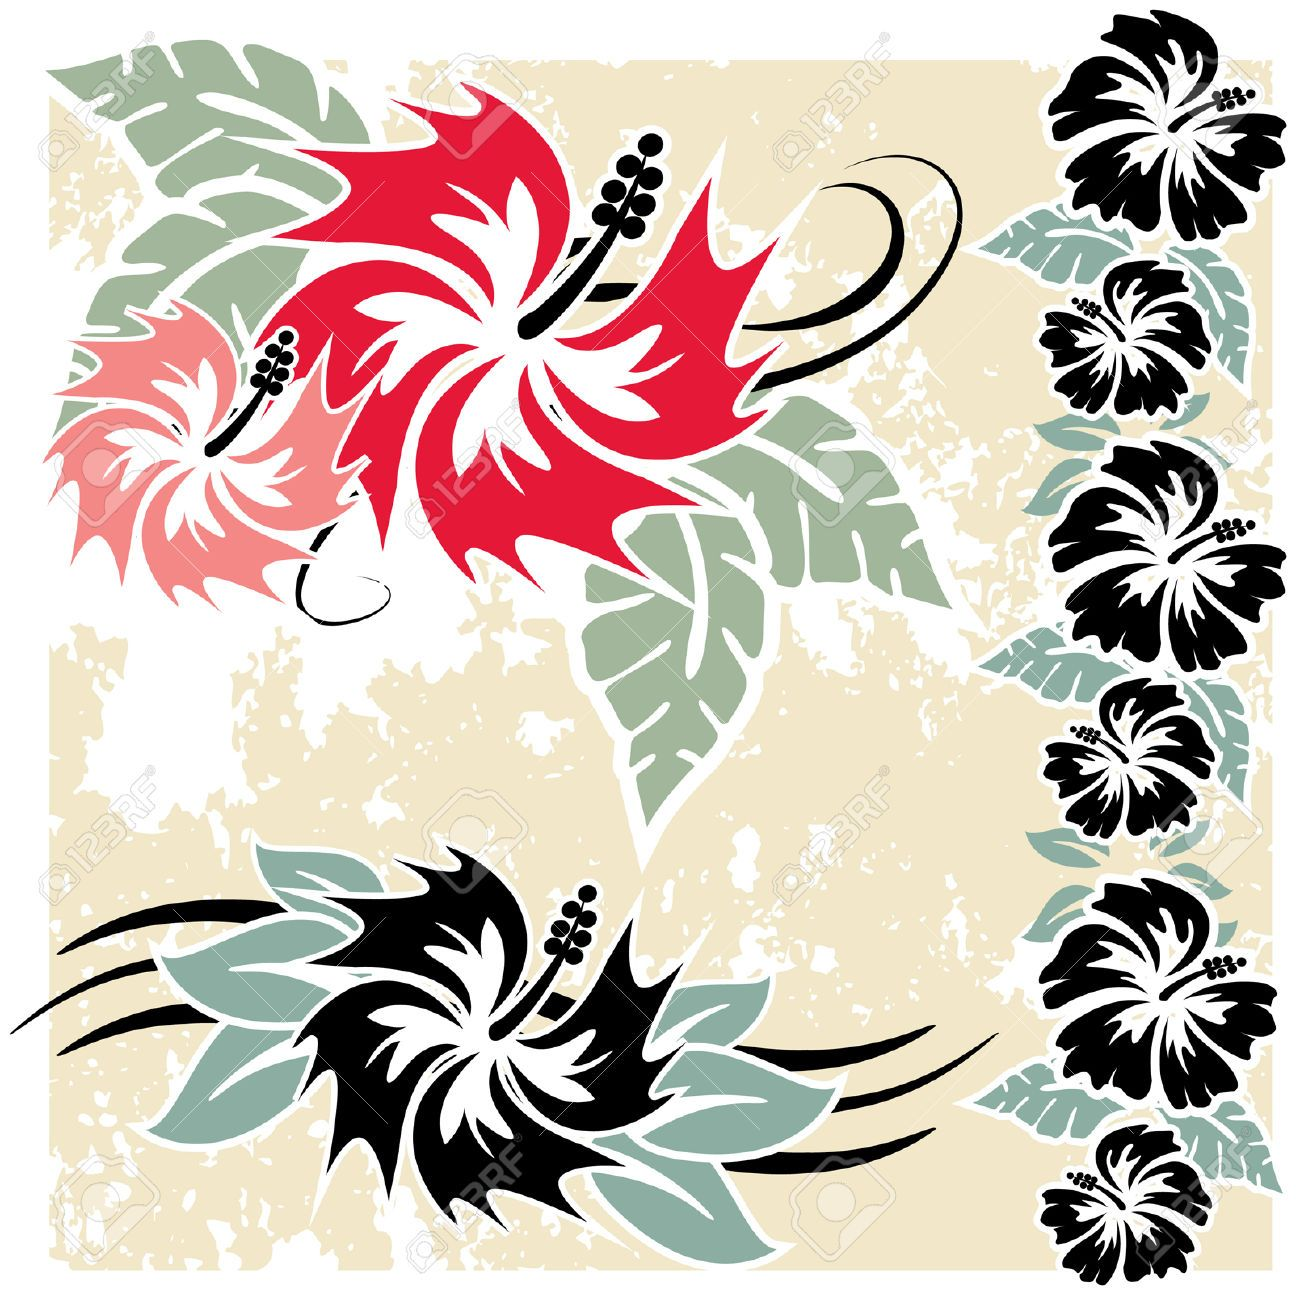 Pin by kimberly rochin on hawaiian hibiscus pinterest hibiscus discover ideas about flower stencils izmirmasajfo